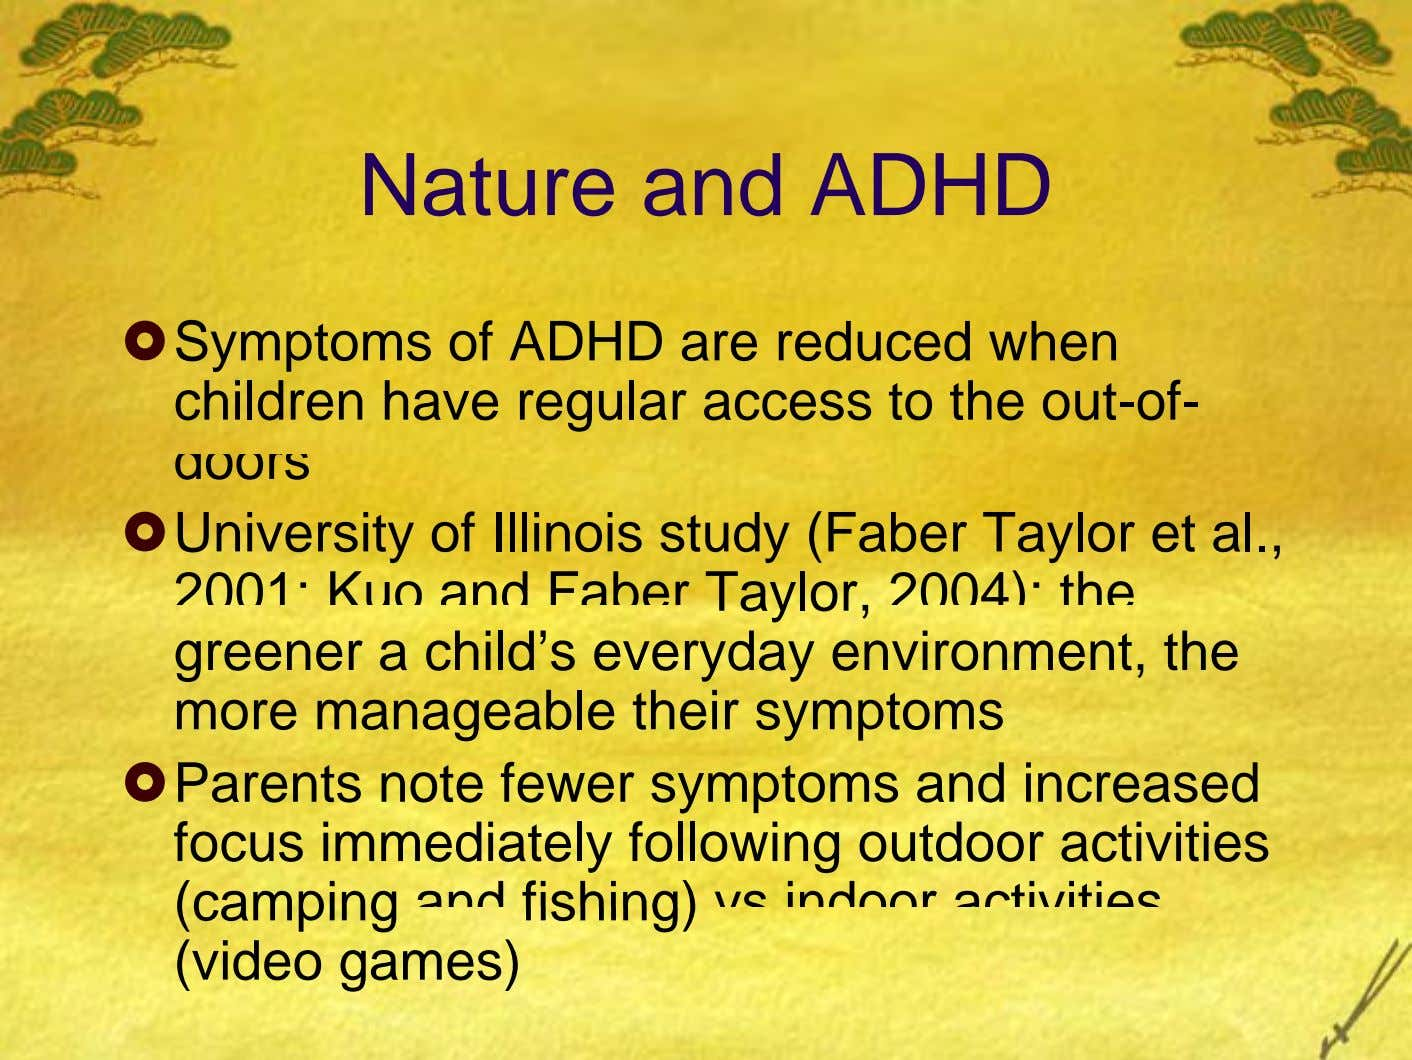 Nature and ADHD Symptoms of ADHD are reduced when children have regular access to the out-of-